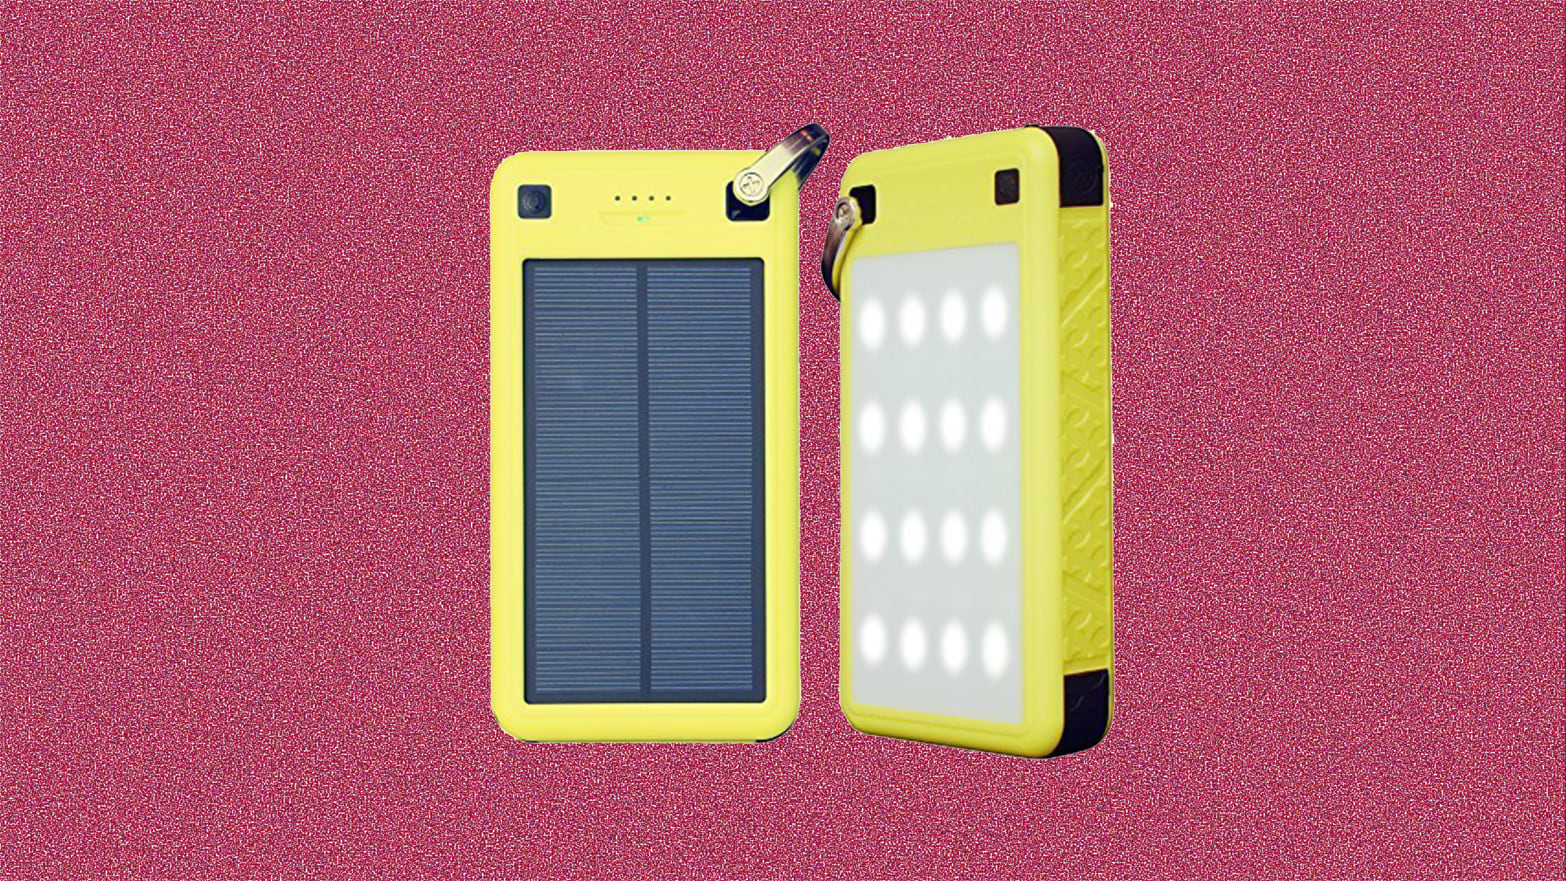 This Solar-Powered Portable Charger Is Waterproof, Shockproof, and $50